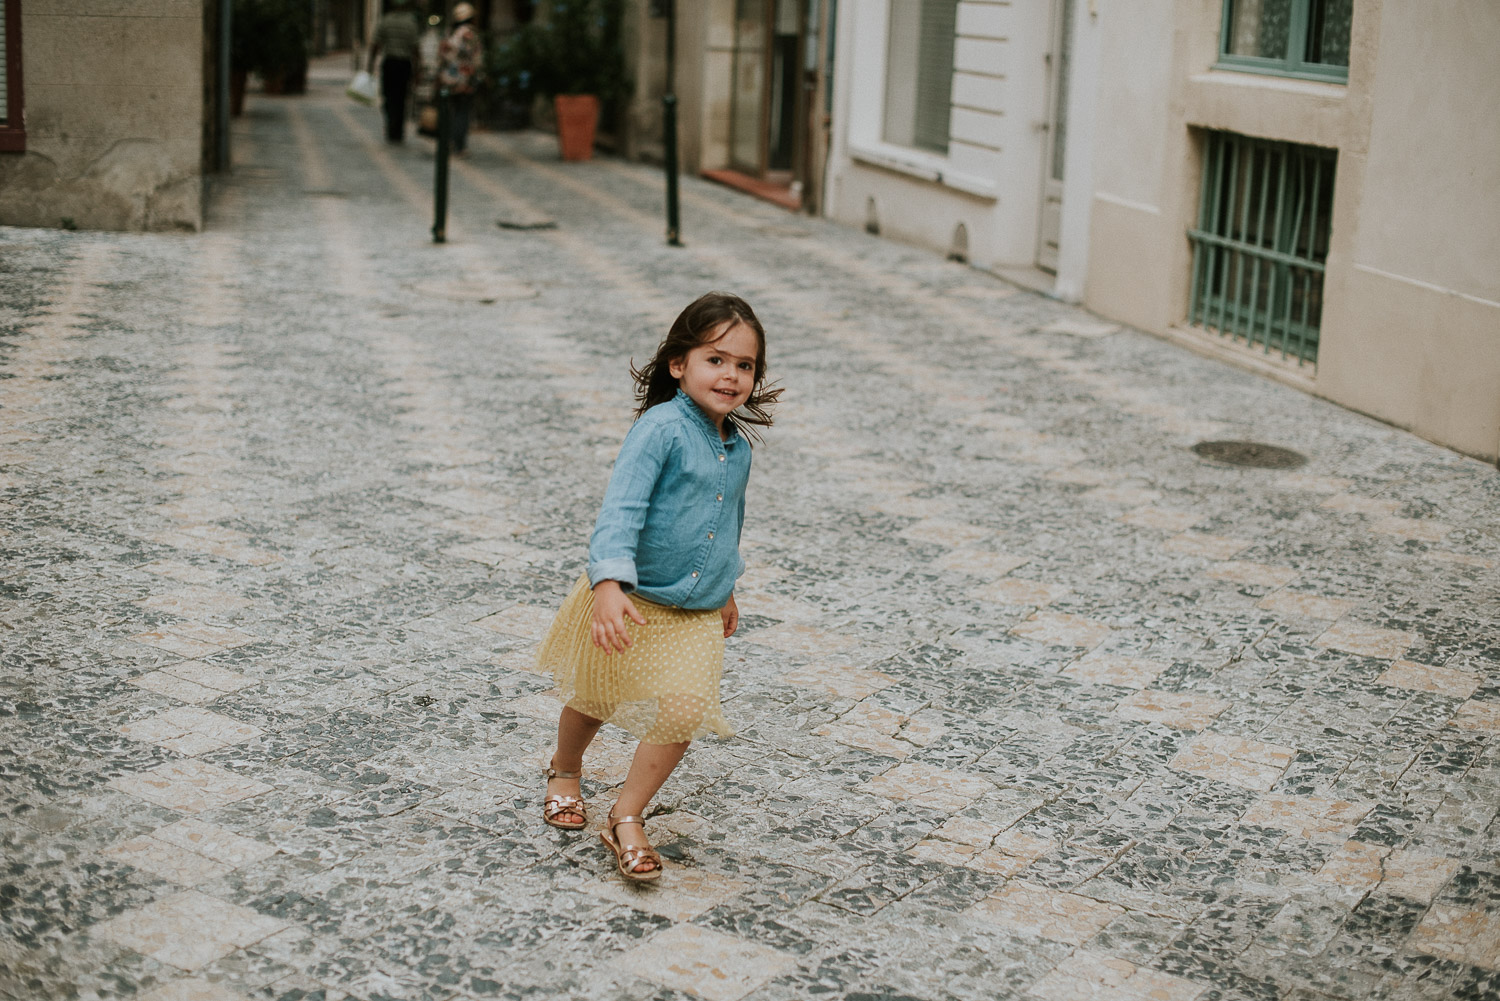 castres_family__france_katy_webb_photography_toulouse_27